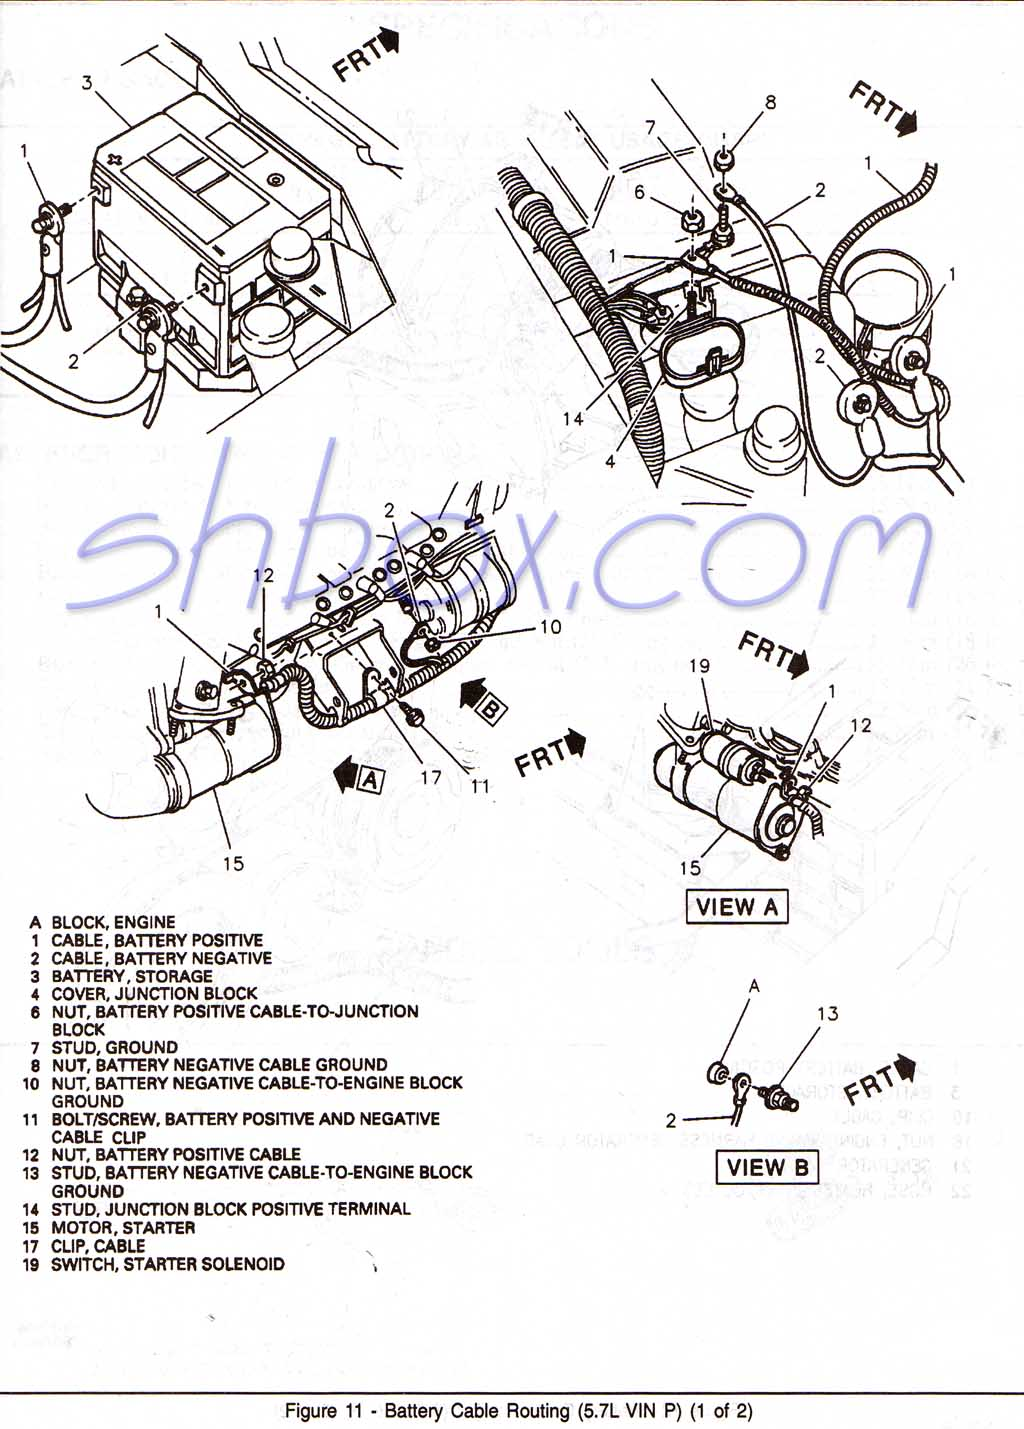 Wrg 93 Civic Ecm Wiring Diagram